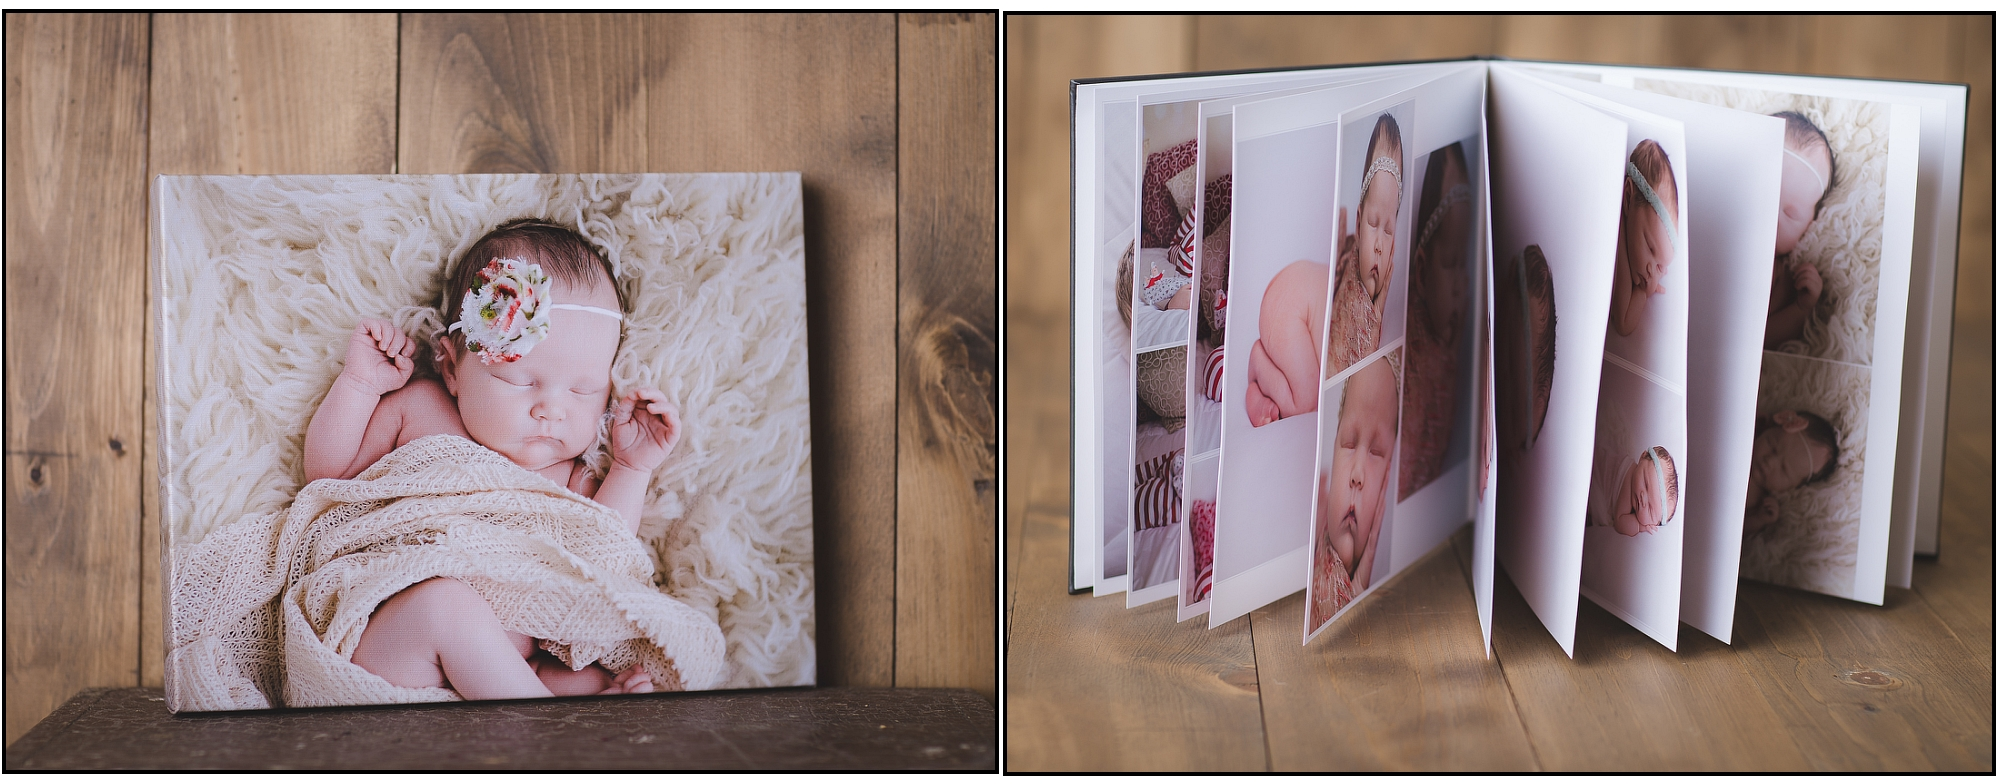 new river family photographer, kristina rose photography, canvas of baby, photo album of baby